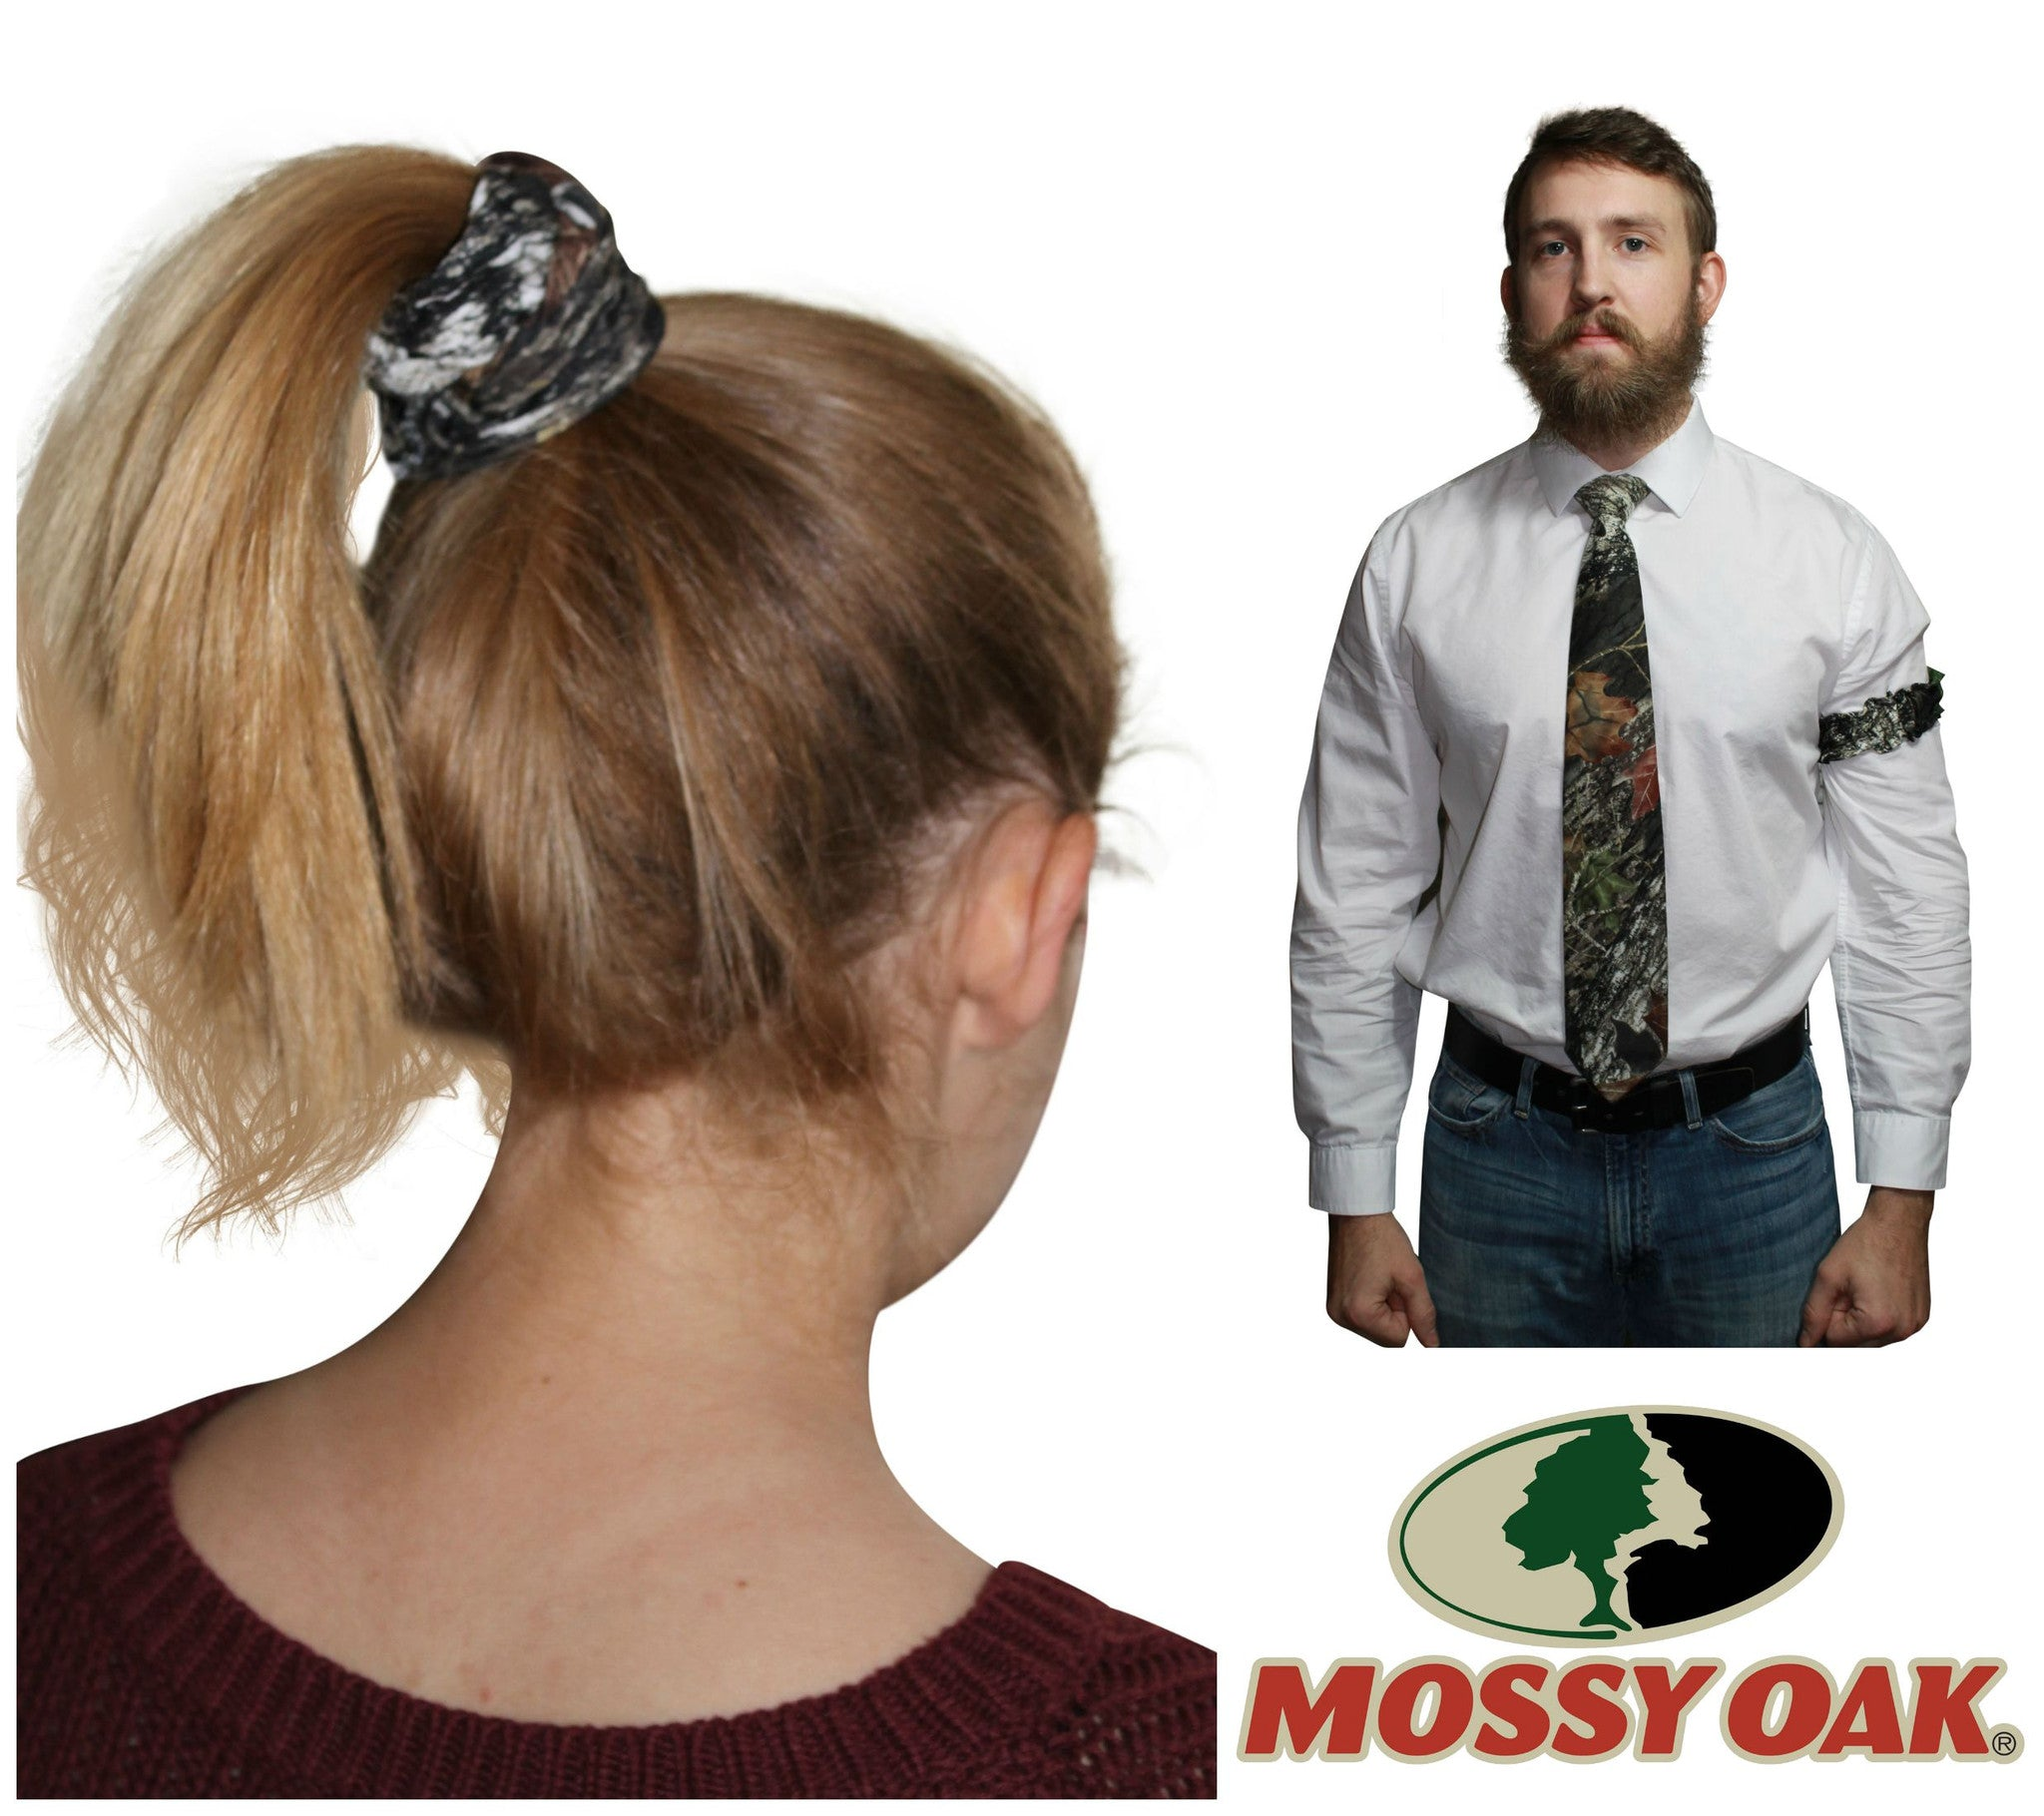 3a70e245b16 Mossy Oak Scrunchie or Mens Camo Arm Garter Officially Licensed   Made in  the USA